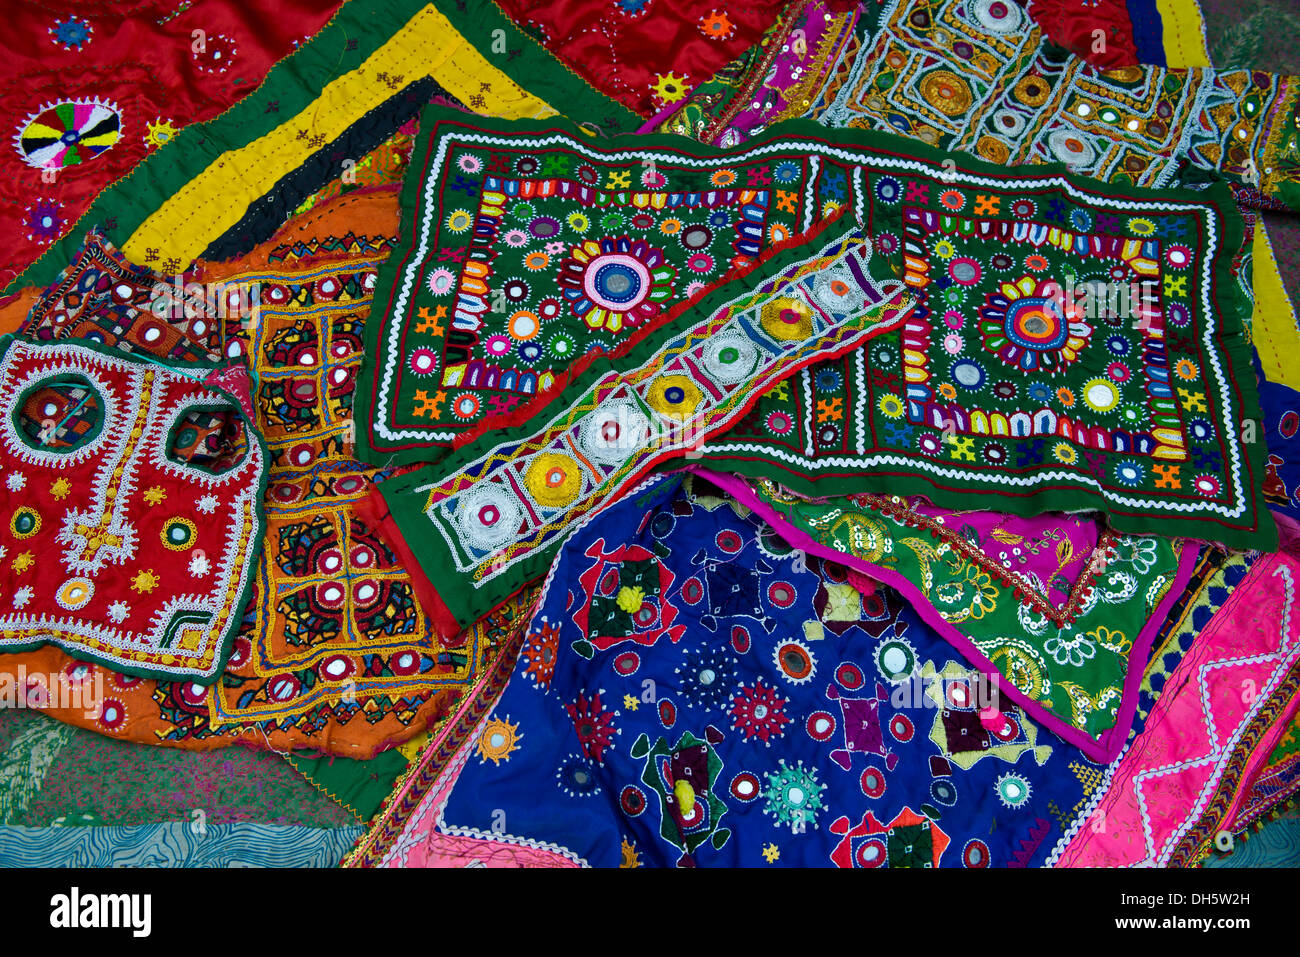 Traditional needlework from Gujarat, embroidery with small sewn-on mirrors, patchwork sewing, Rann of Kutch, Gujarat, India - Stock Image